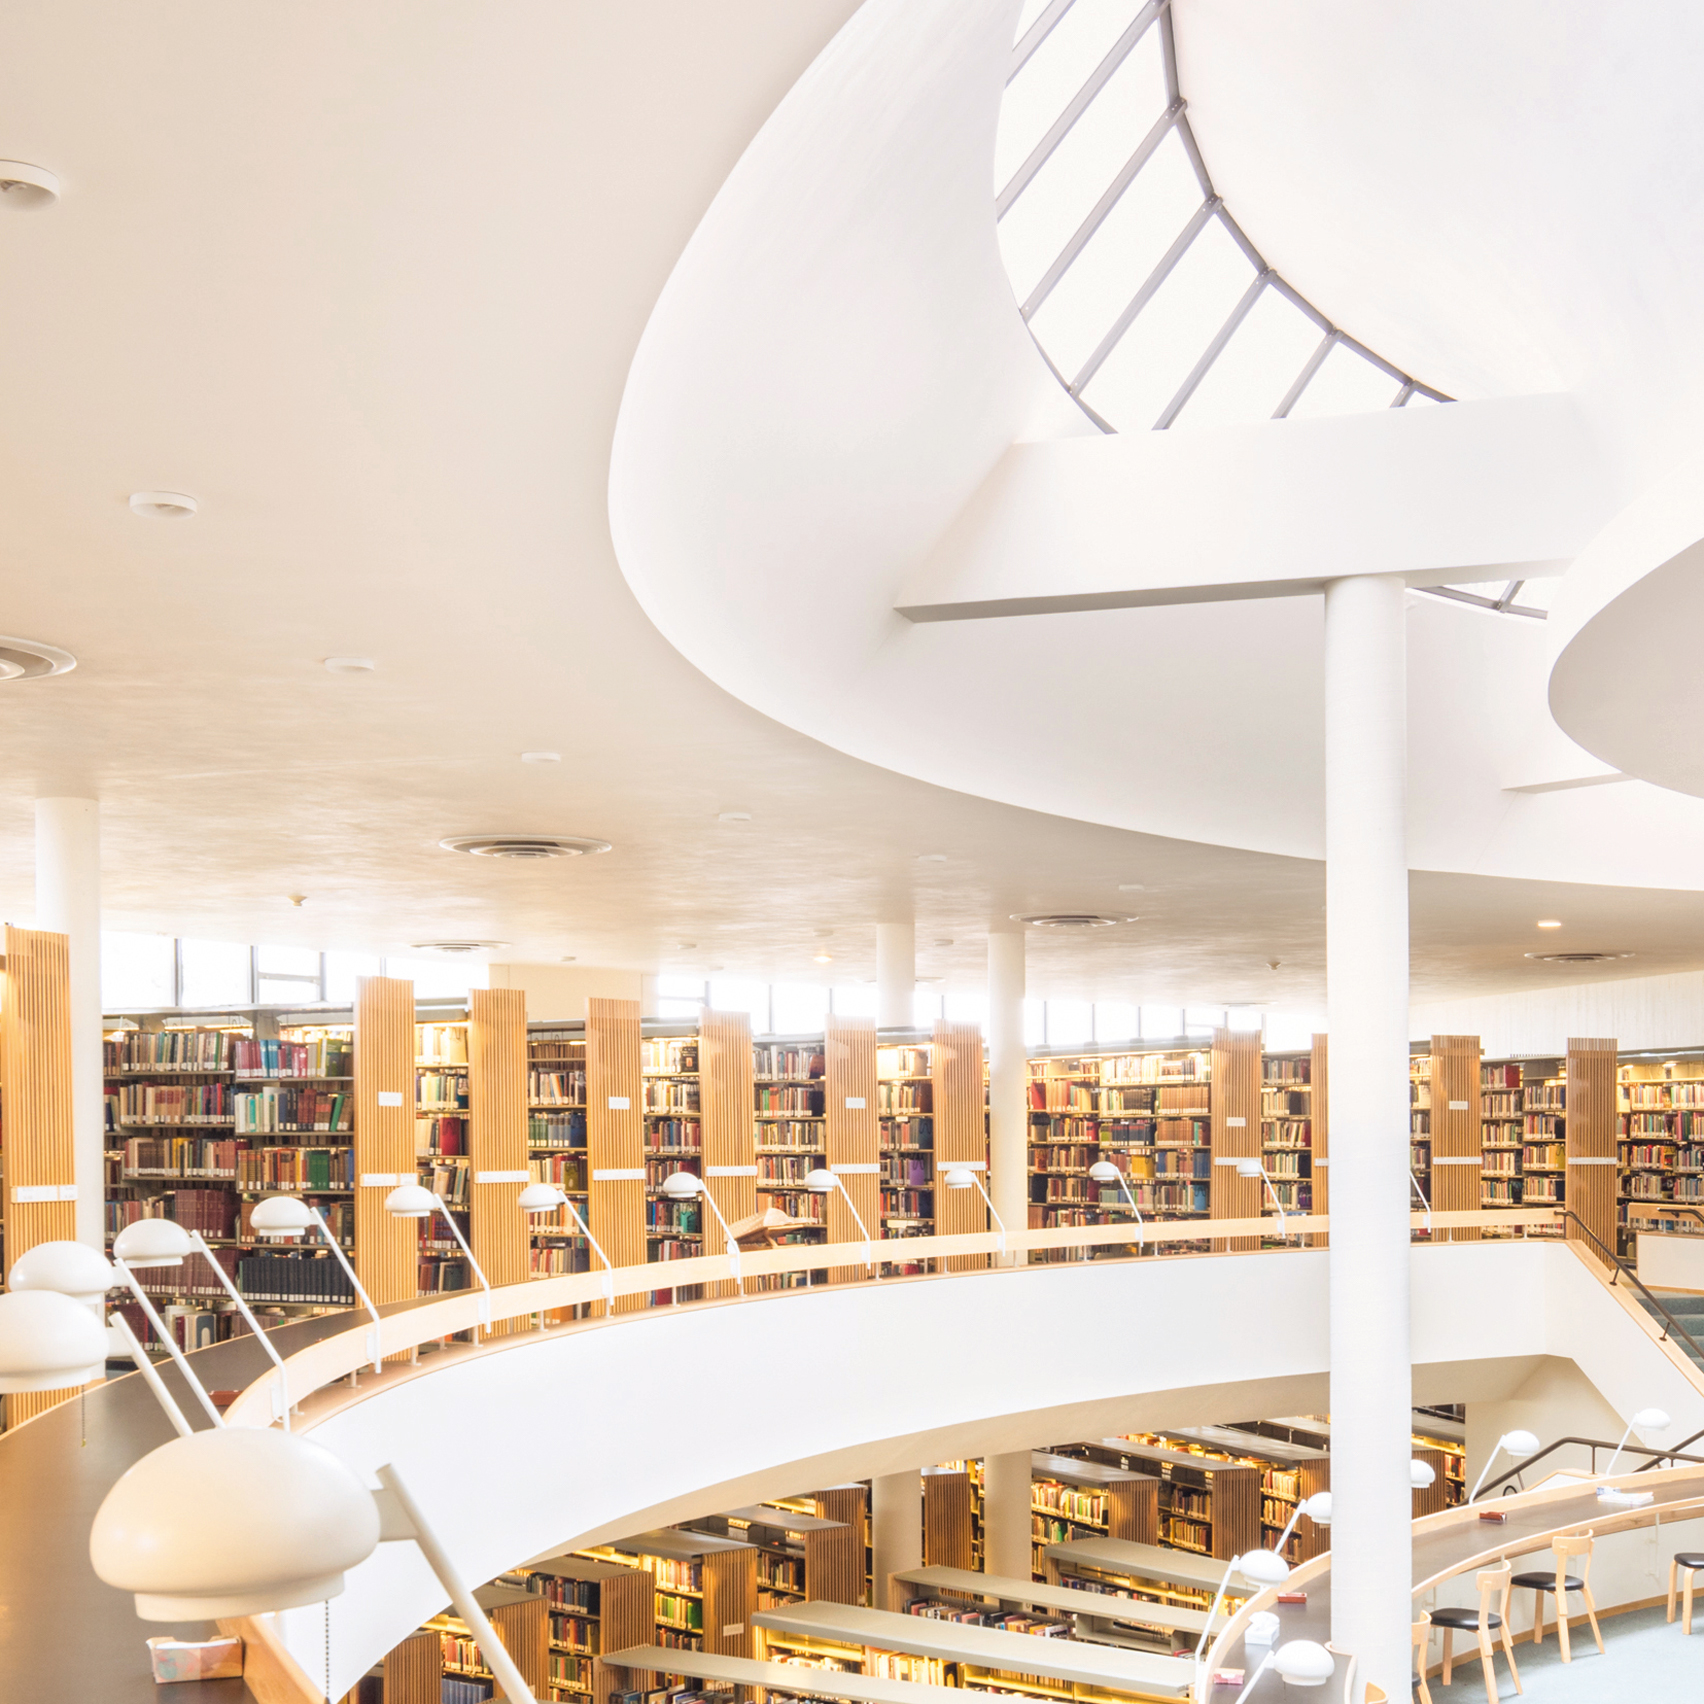 mount-angel-library-alvar-aalto-portland-1970-usa-roundups-architecture_sq